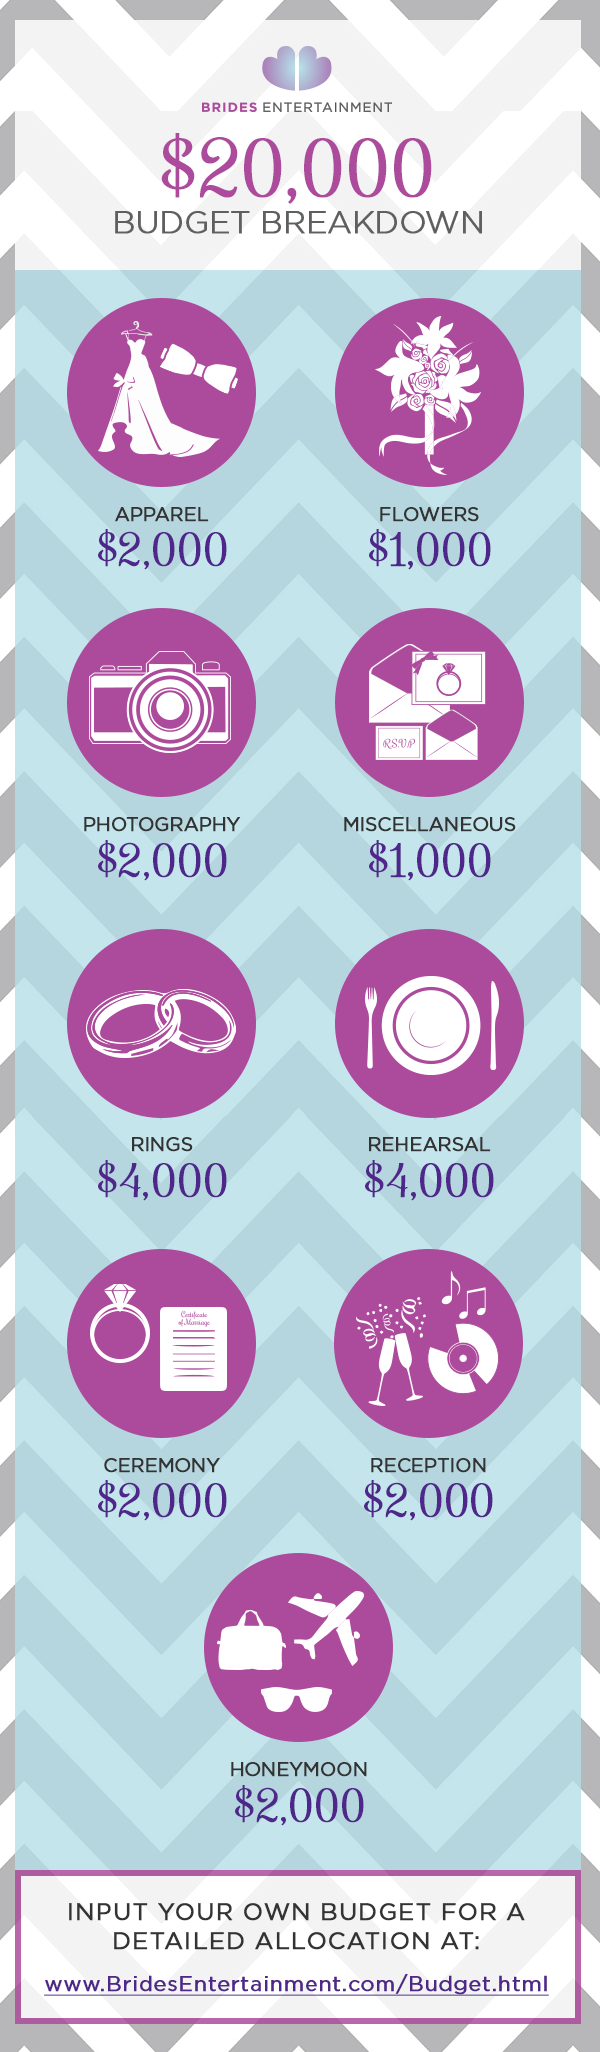 wedding on a budget use the brides entertainment budget tool you